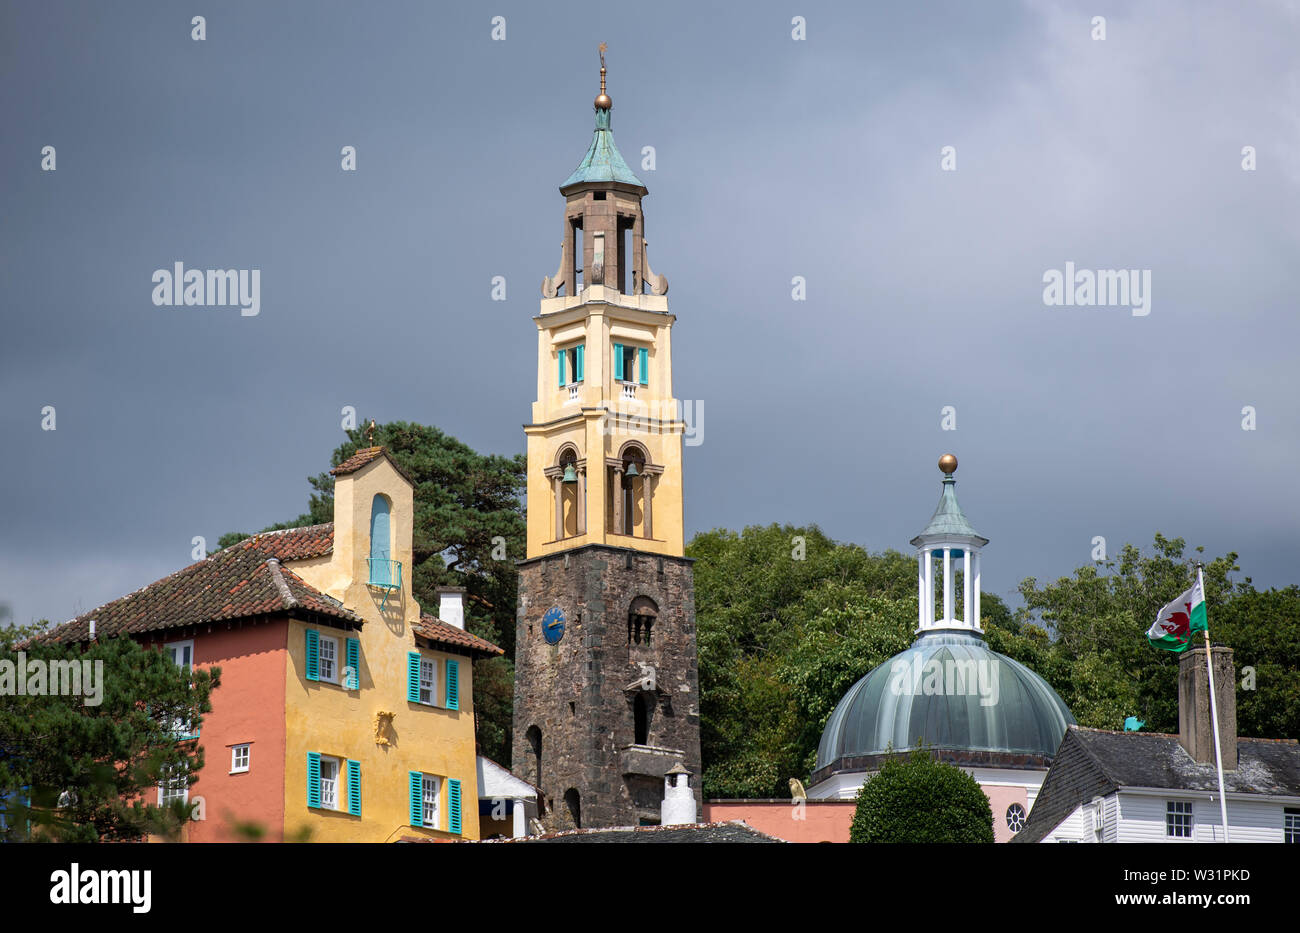 Portmeirion in North Wales, an Italianate model village built by its founder, architect Clough Williams-Ellis Stock Photo